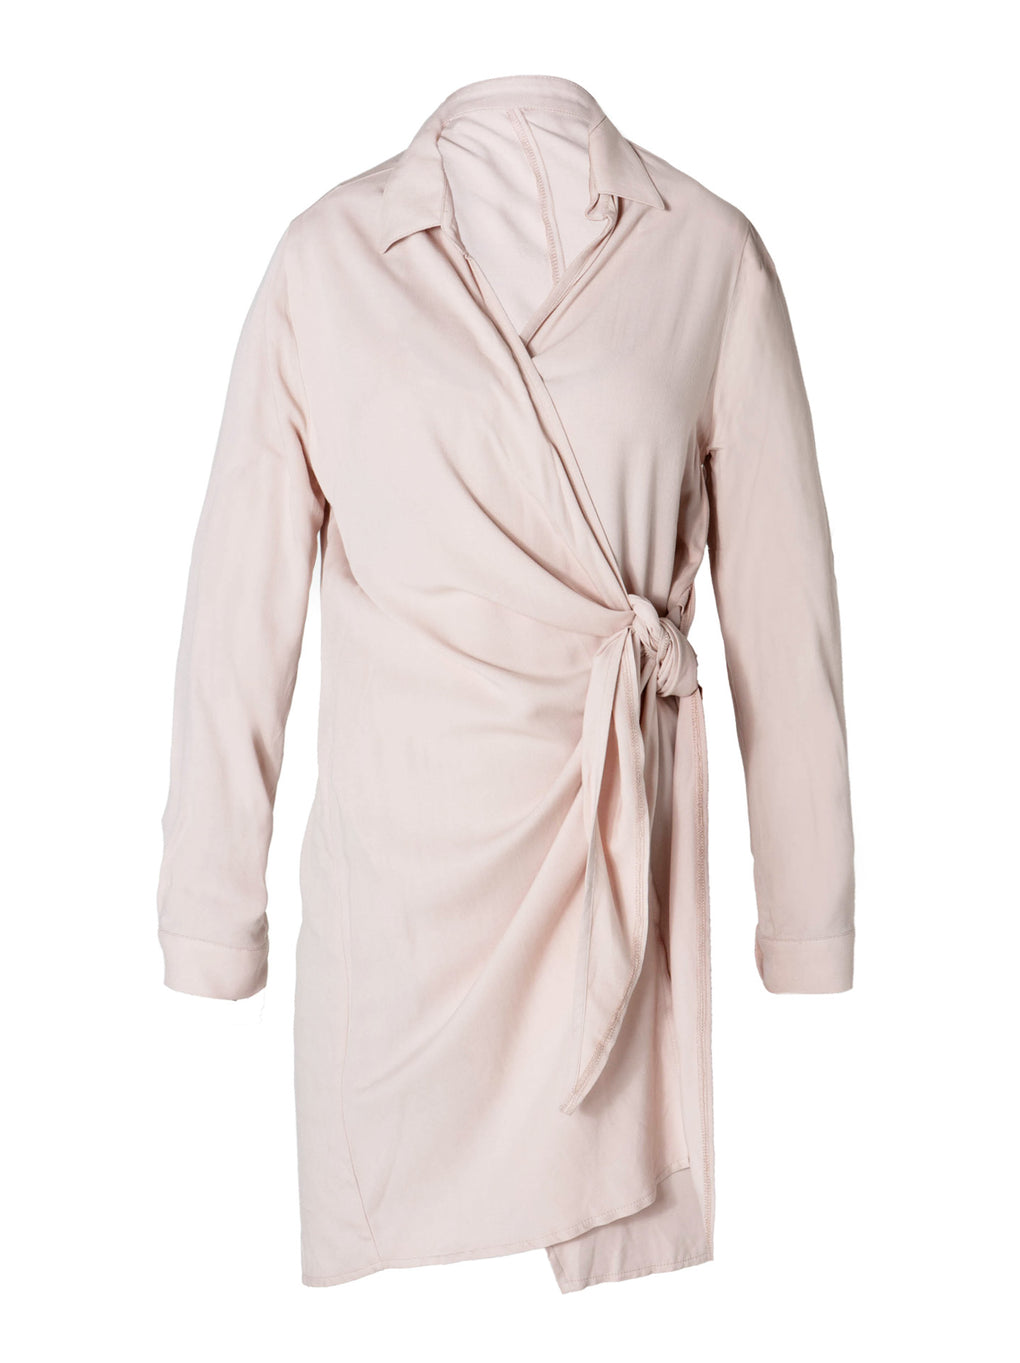 Women's Wrap Knot Dress - Strawberry Pink